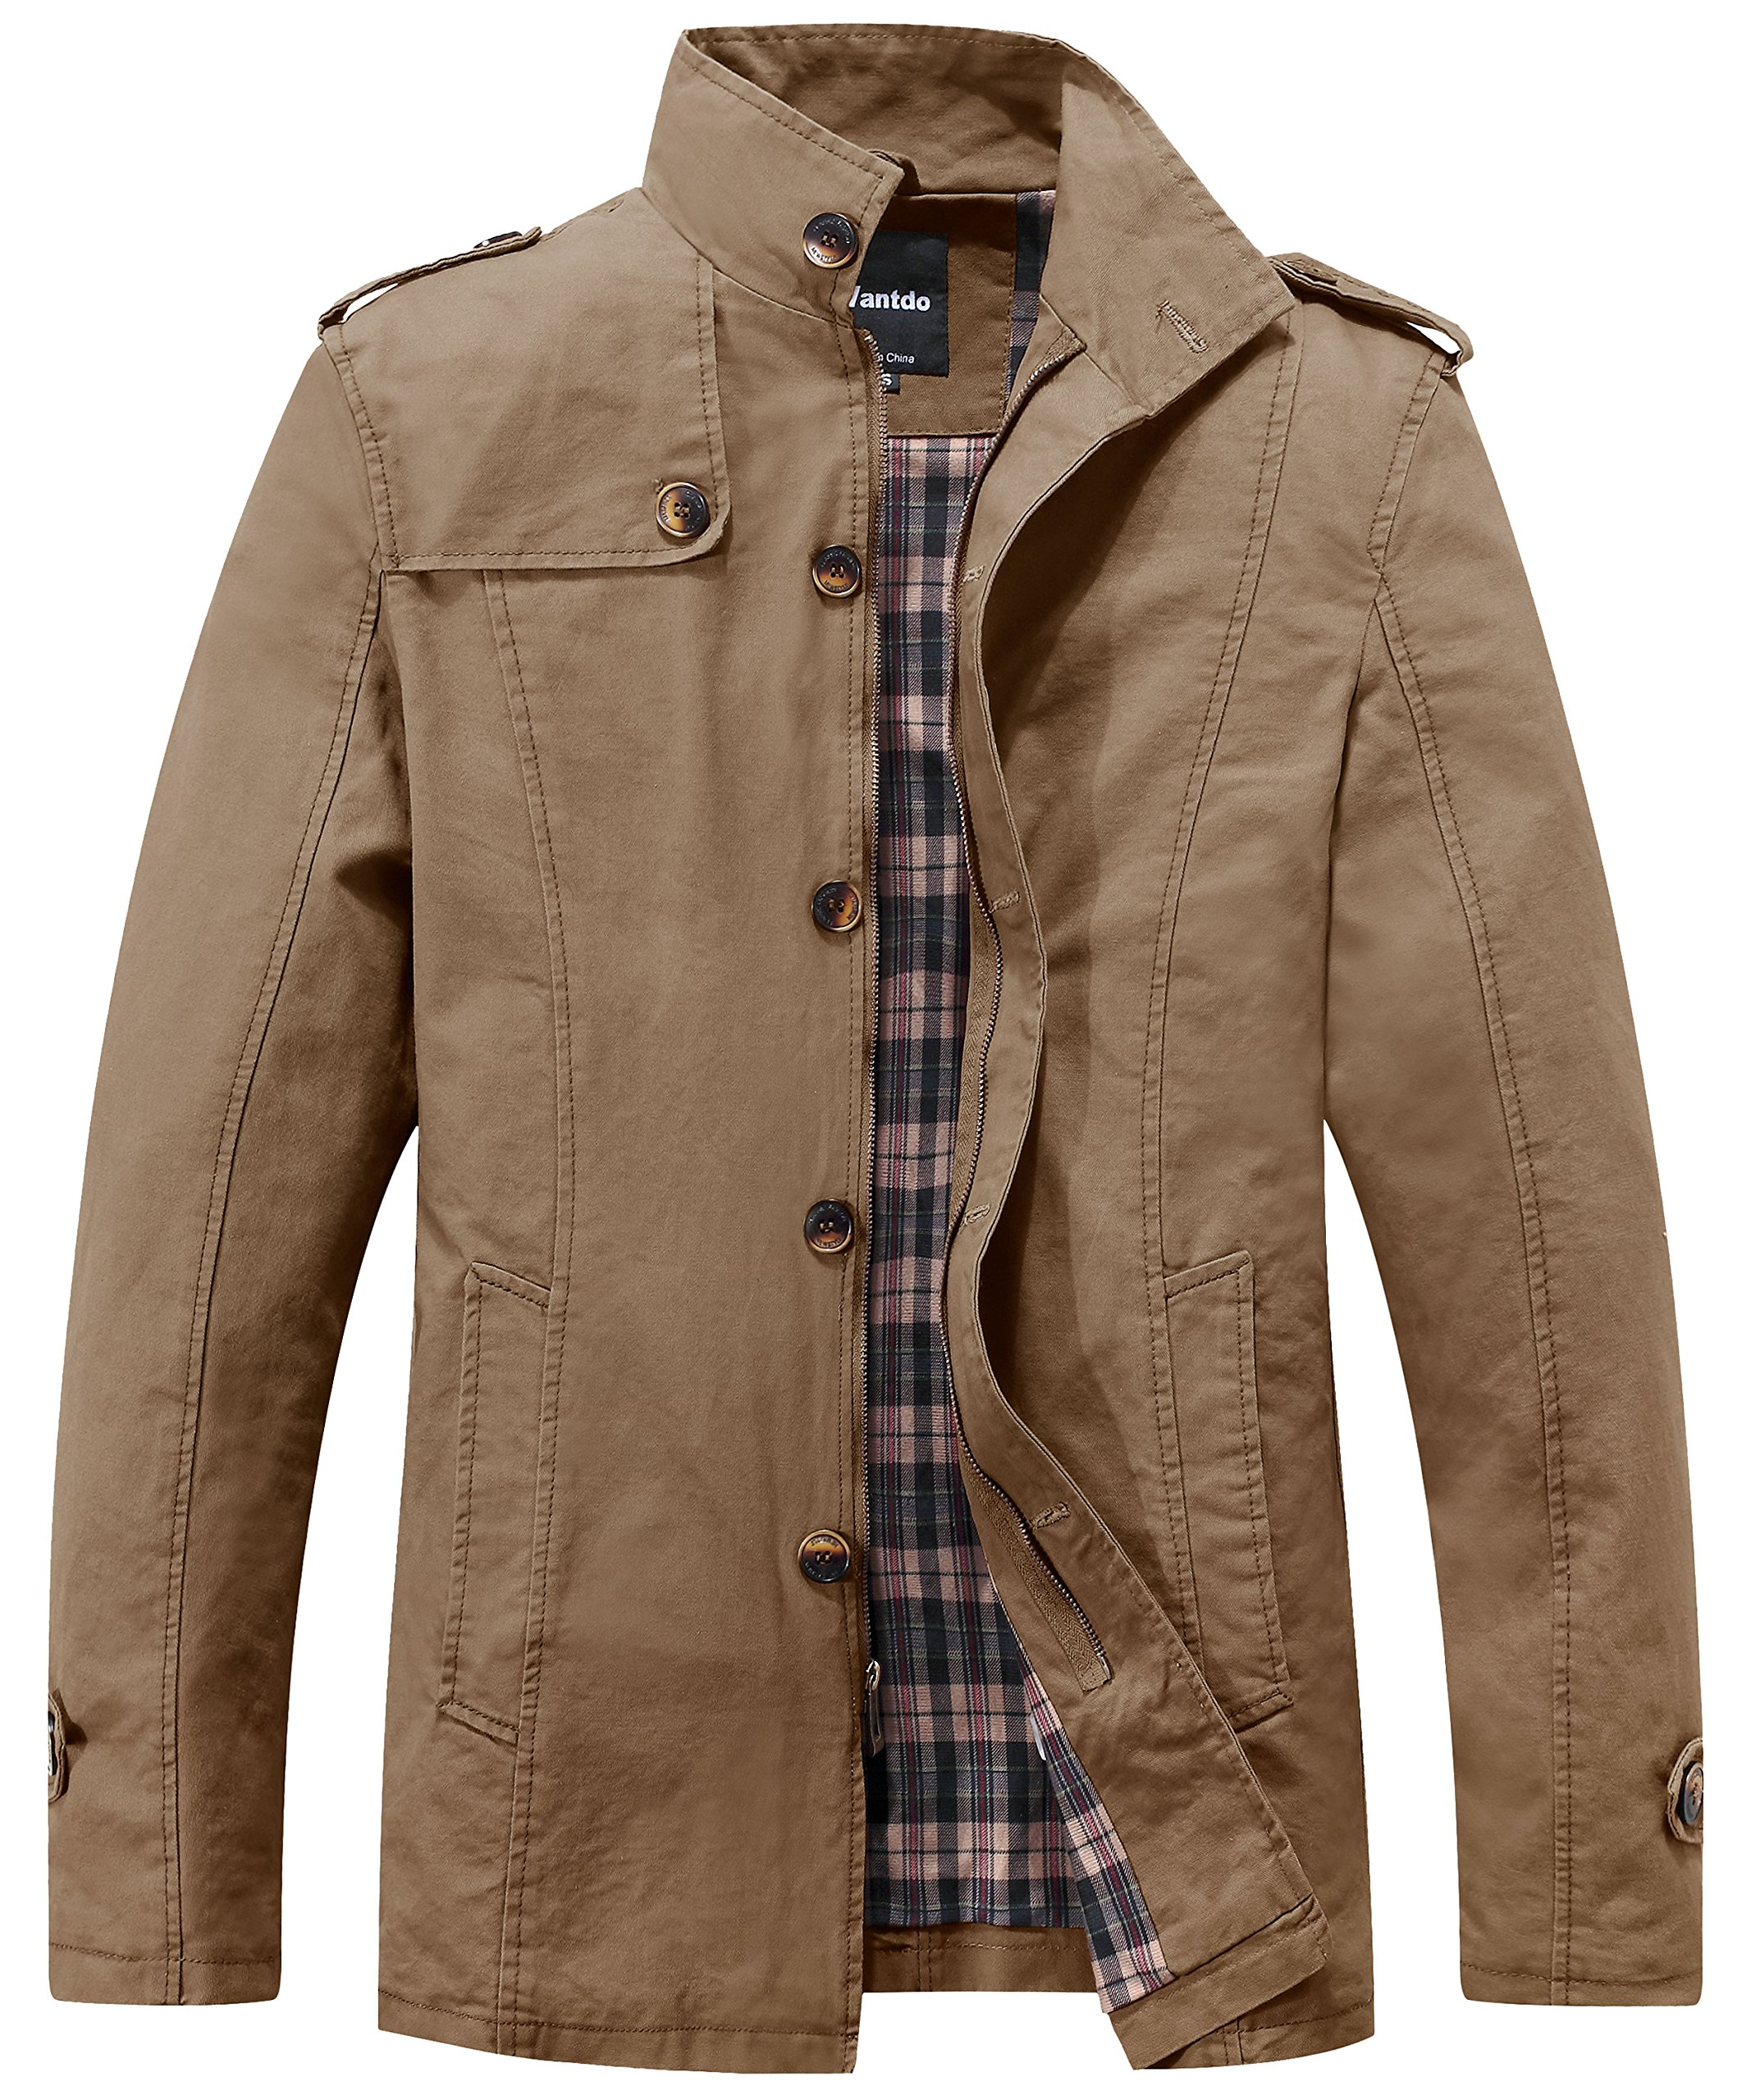 Wantdo Men's Stand Collar Cotton Classic Jacket US Large Khaki by Wantdo